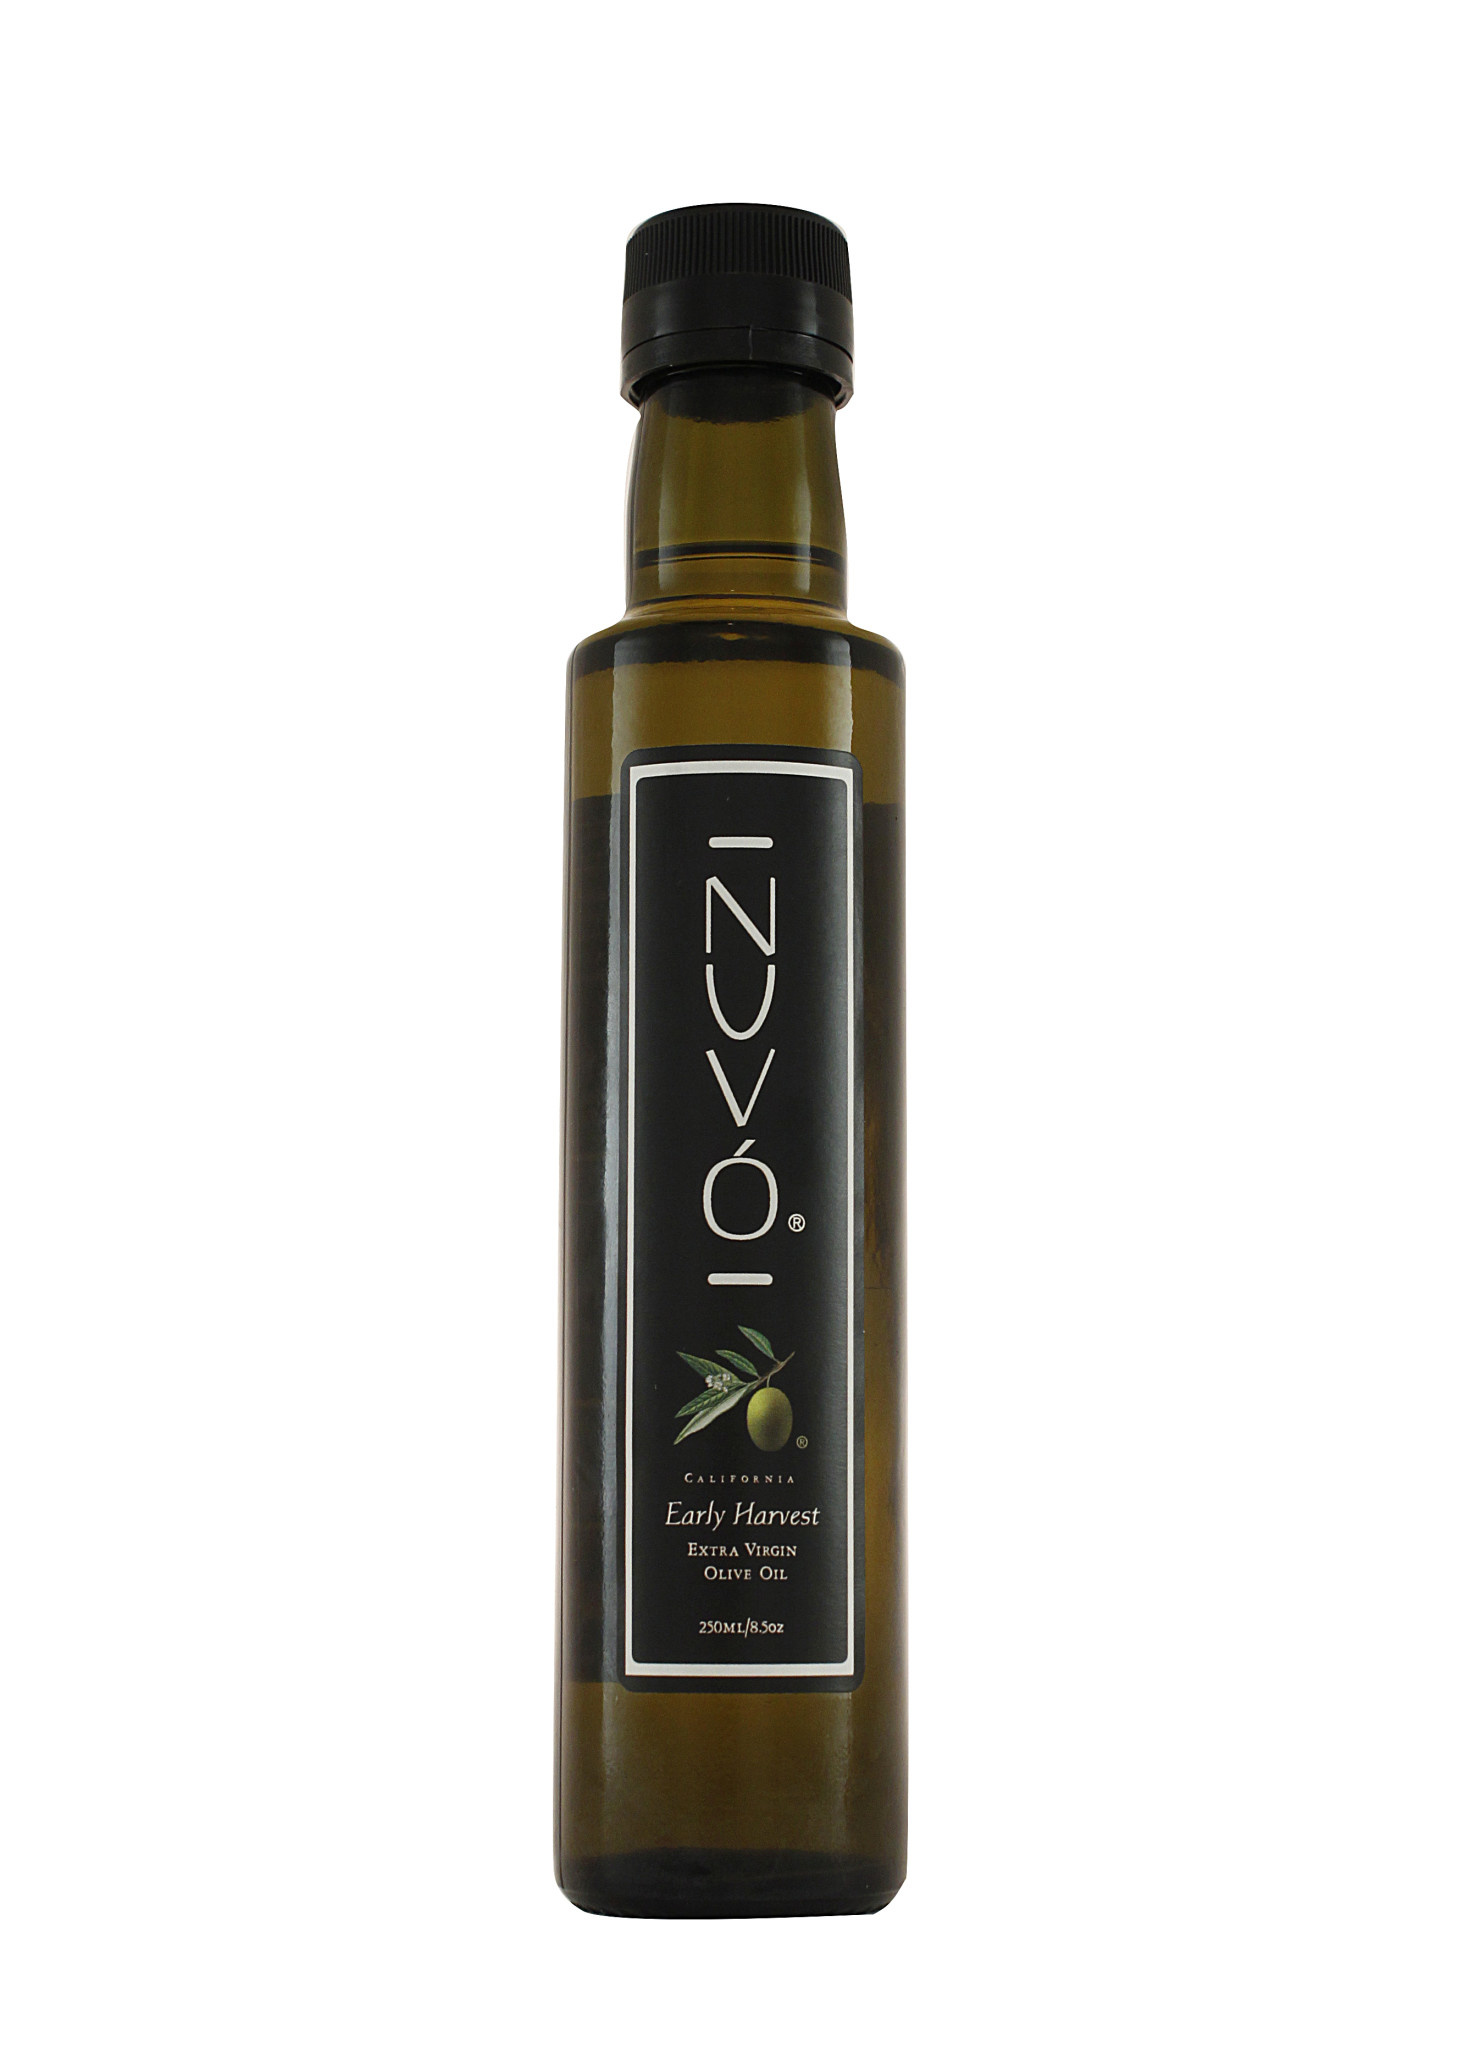 NUVO Early Harvest Extra Virgin Olive Oil, California